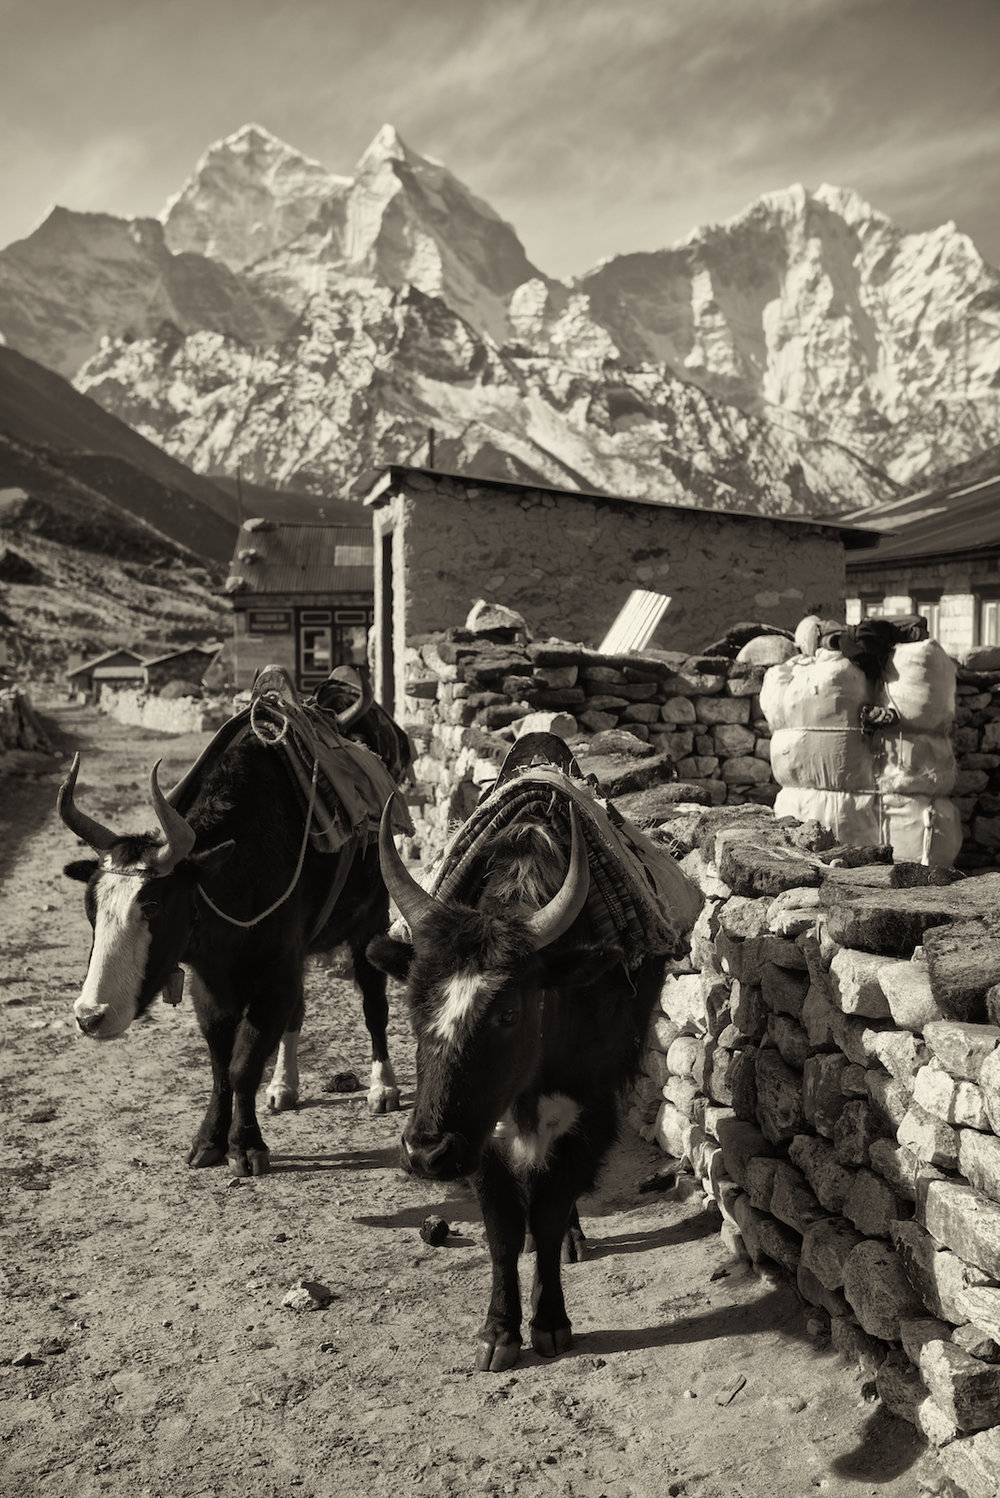 Yaks at the village of Dengboche, on the way to Mount Everest Base Camp in the Nepal Himalayas.  Image by New Orleans based travel photographer, Marc Pagani - marcpagani.com